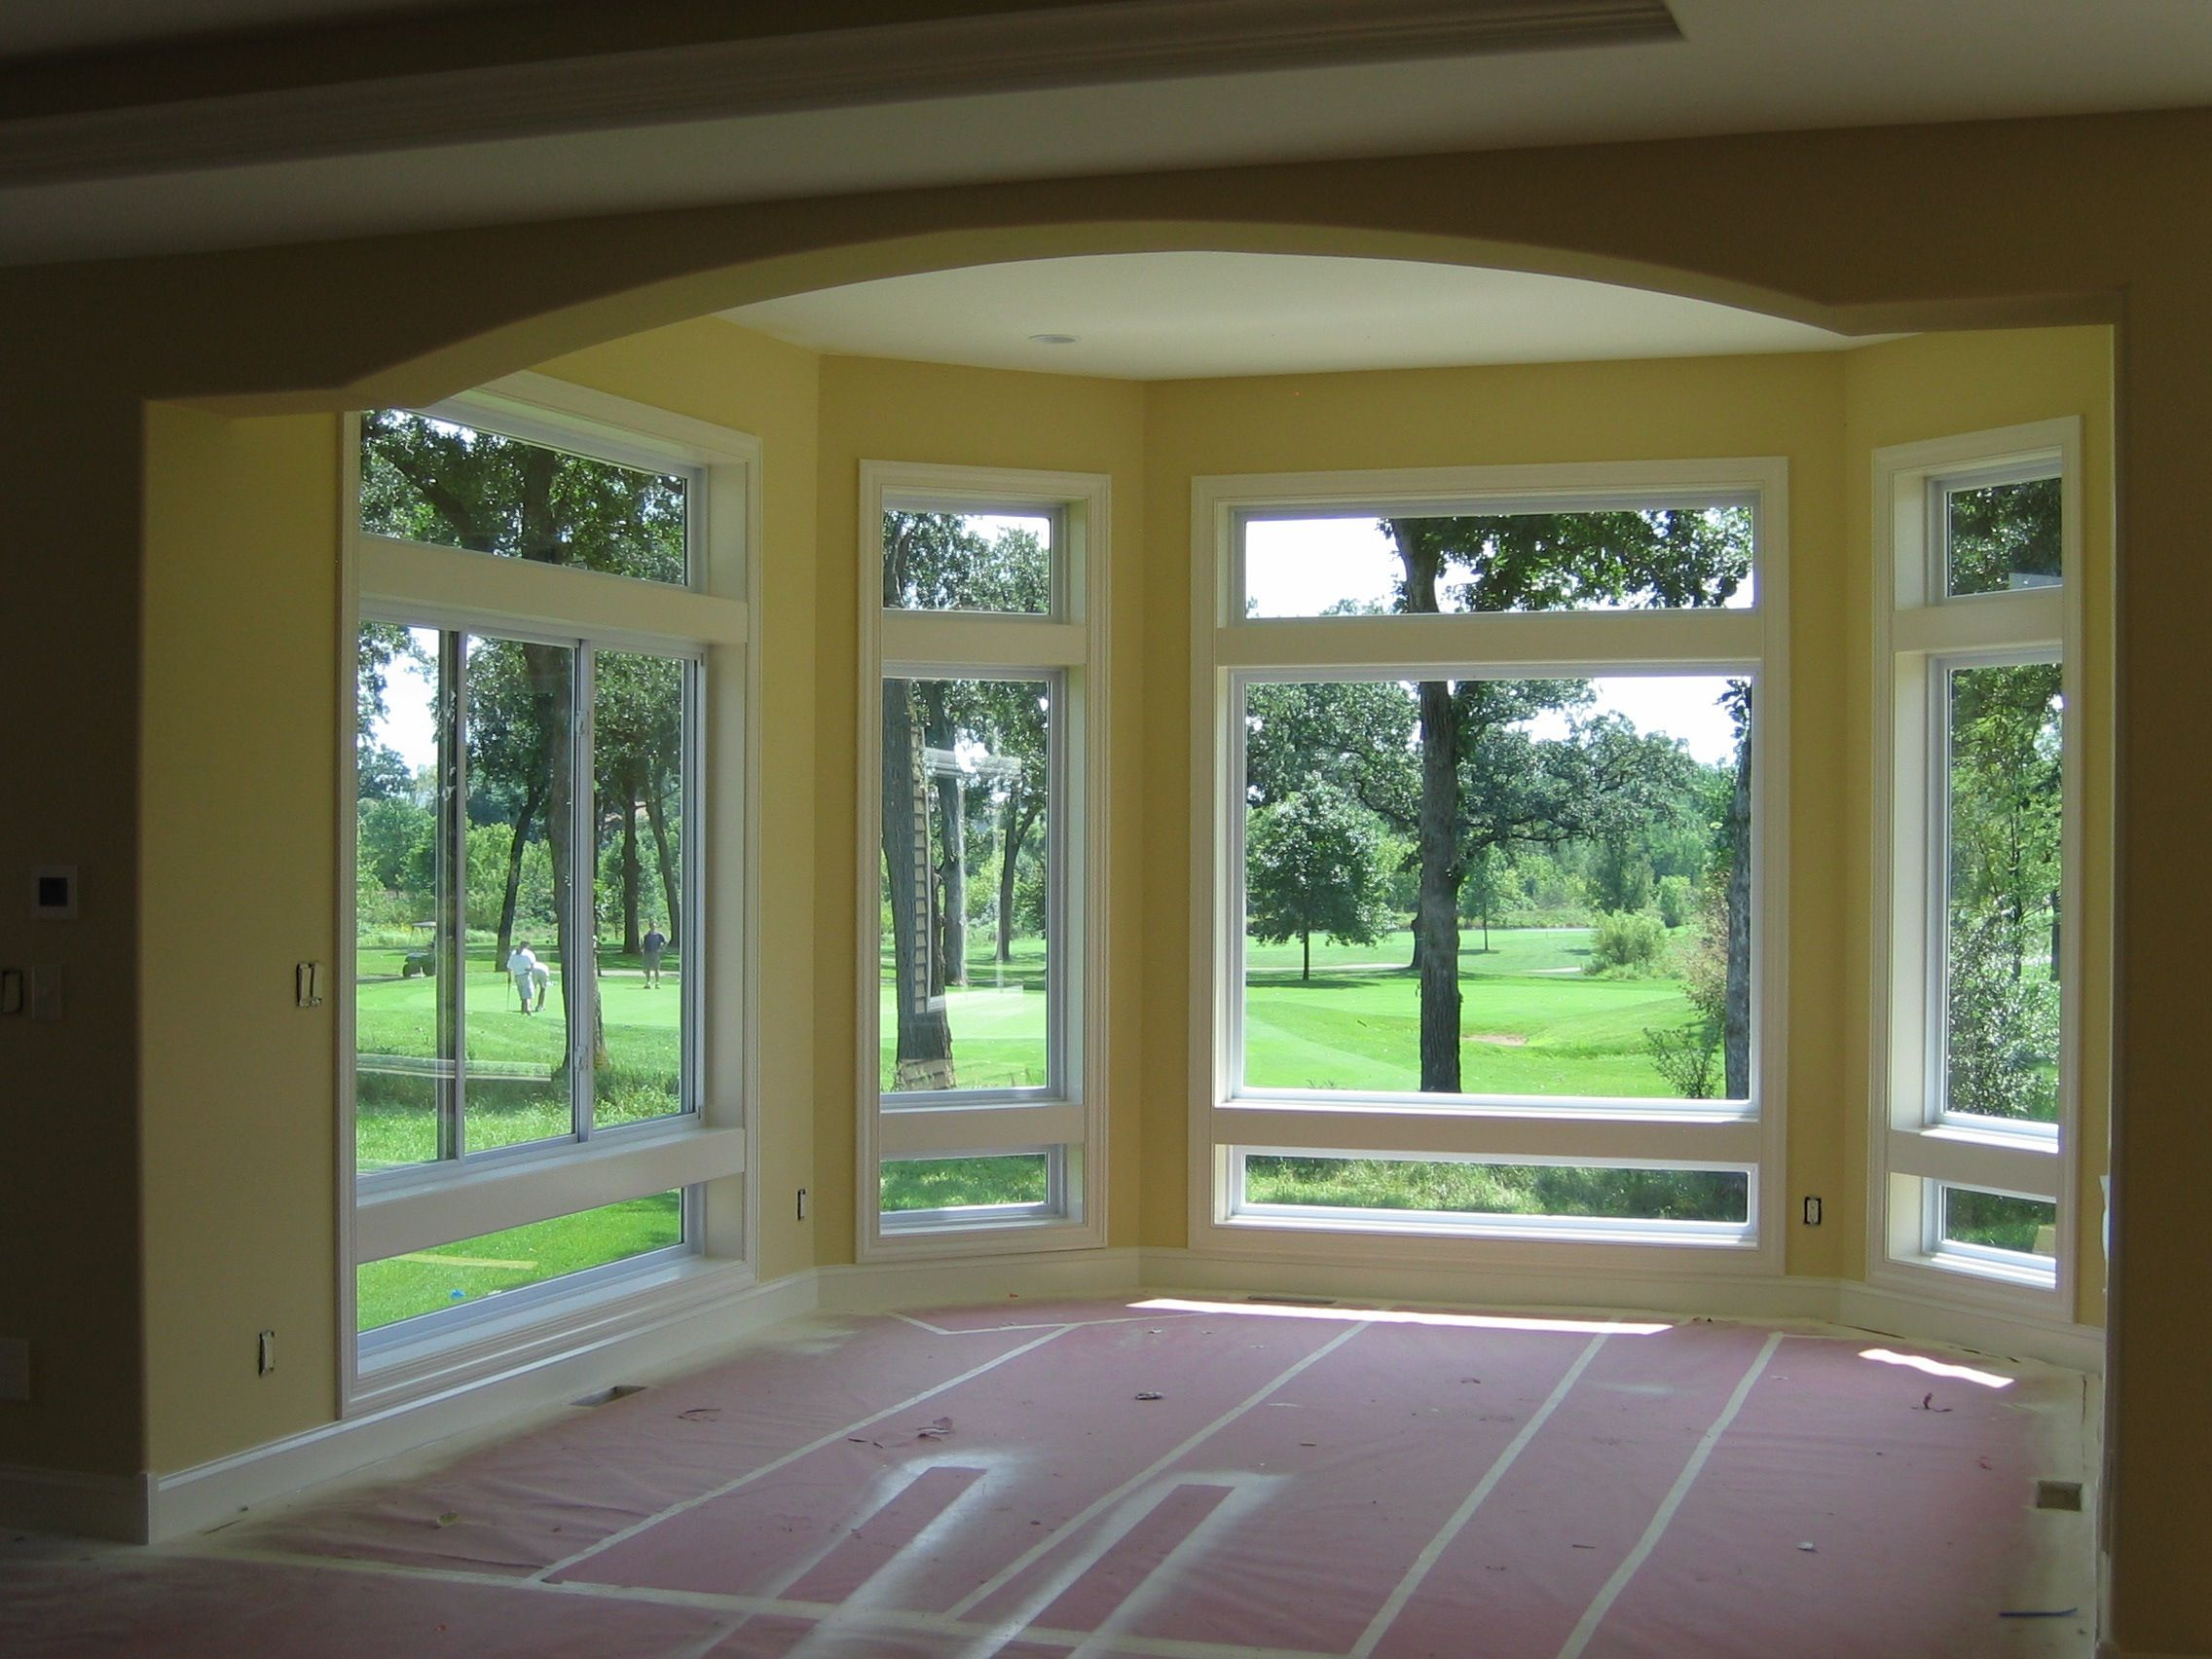 3m S Night Vision 35 Interior View Residential Window Film